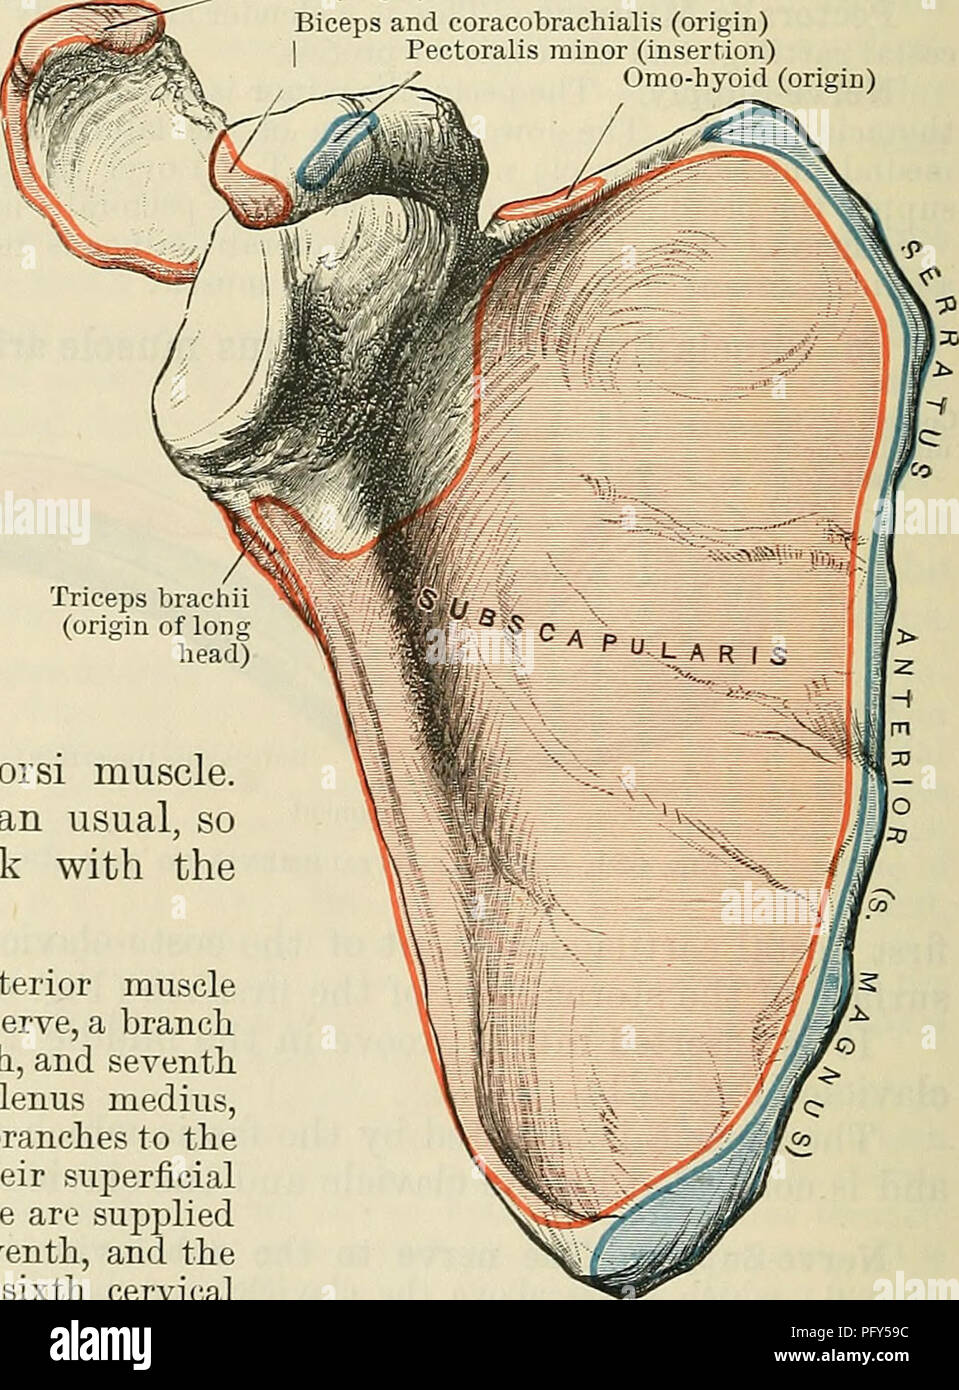 medium resolution of the sternoclavicularis is a small separate slip rarely present extending beneath the pector alis major from the upper part of the sternum